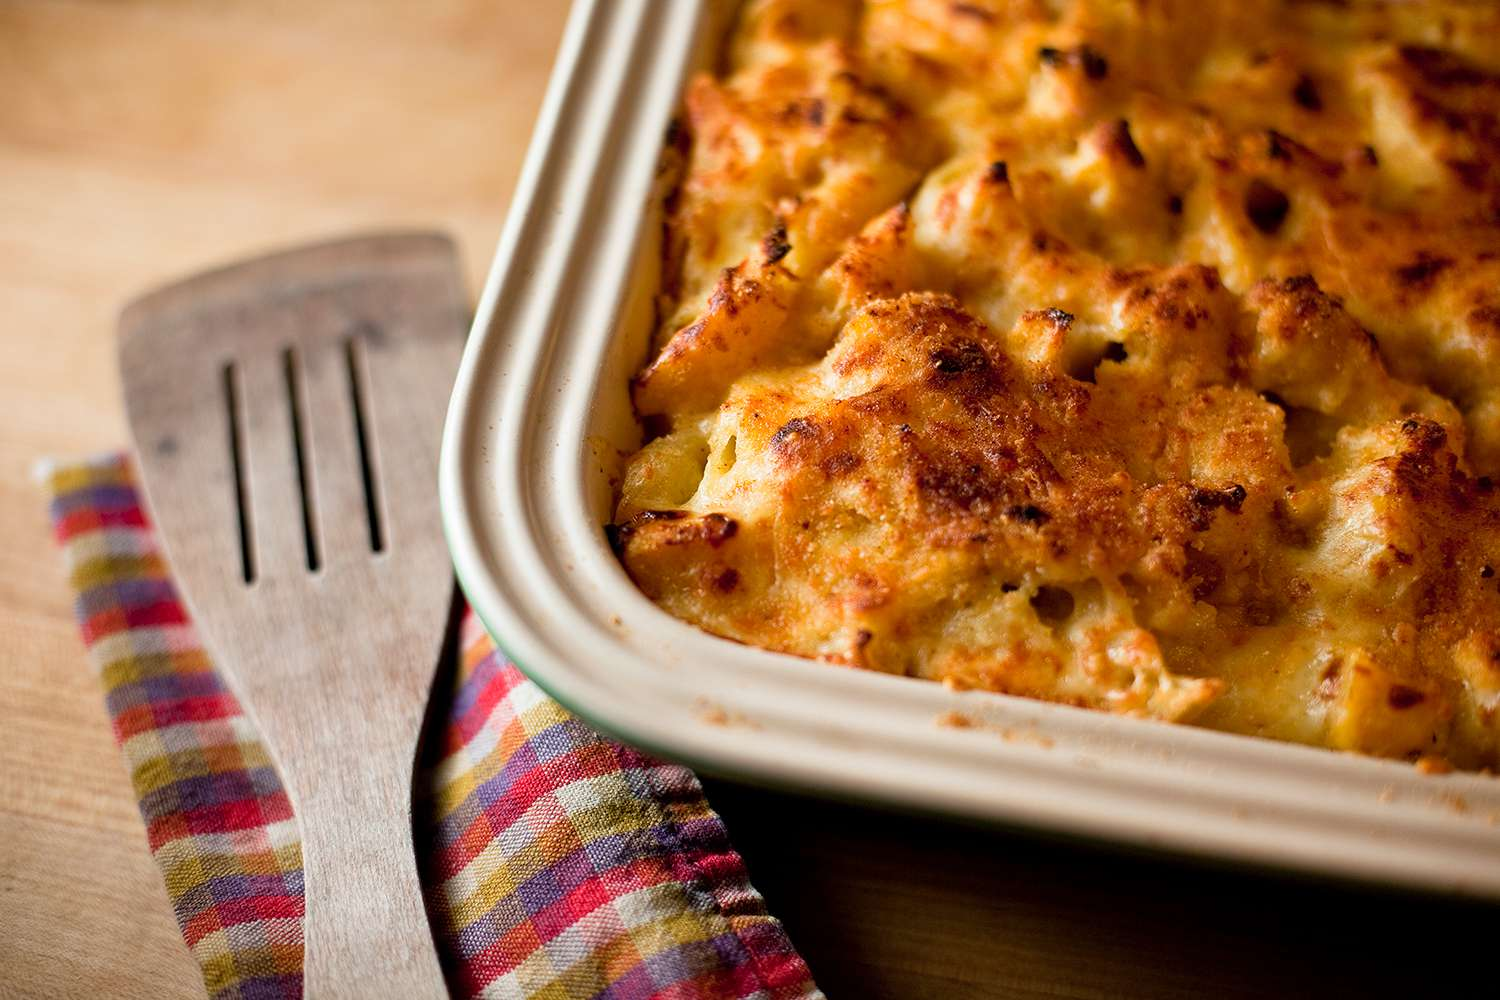 A freshly baked macaroni and cheese dish made with organic acorn squash, along with a wooden spatula for serving